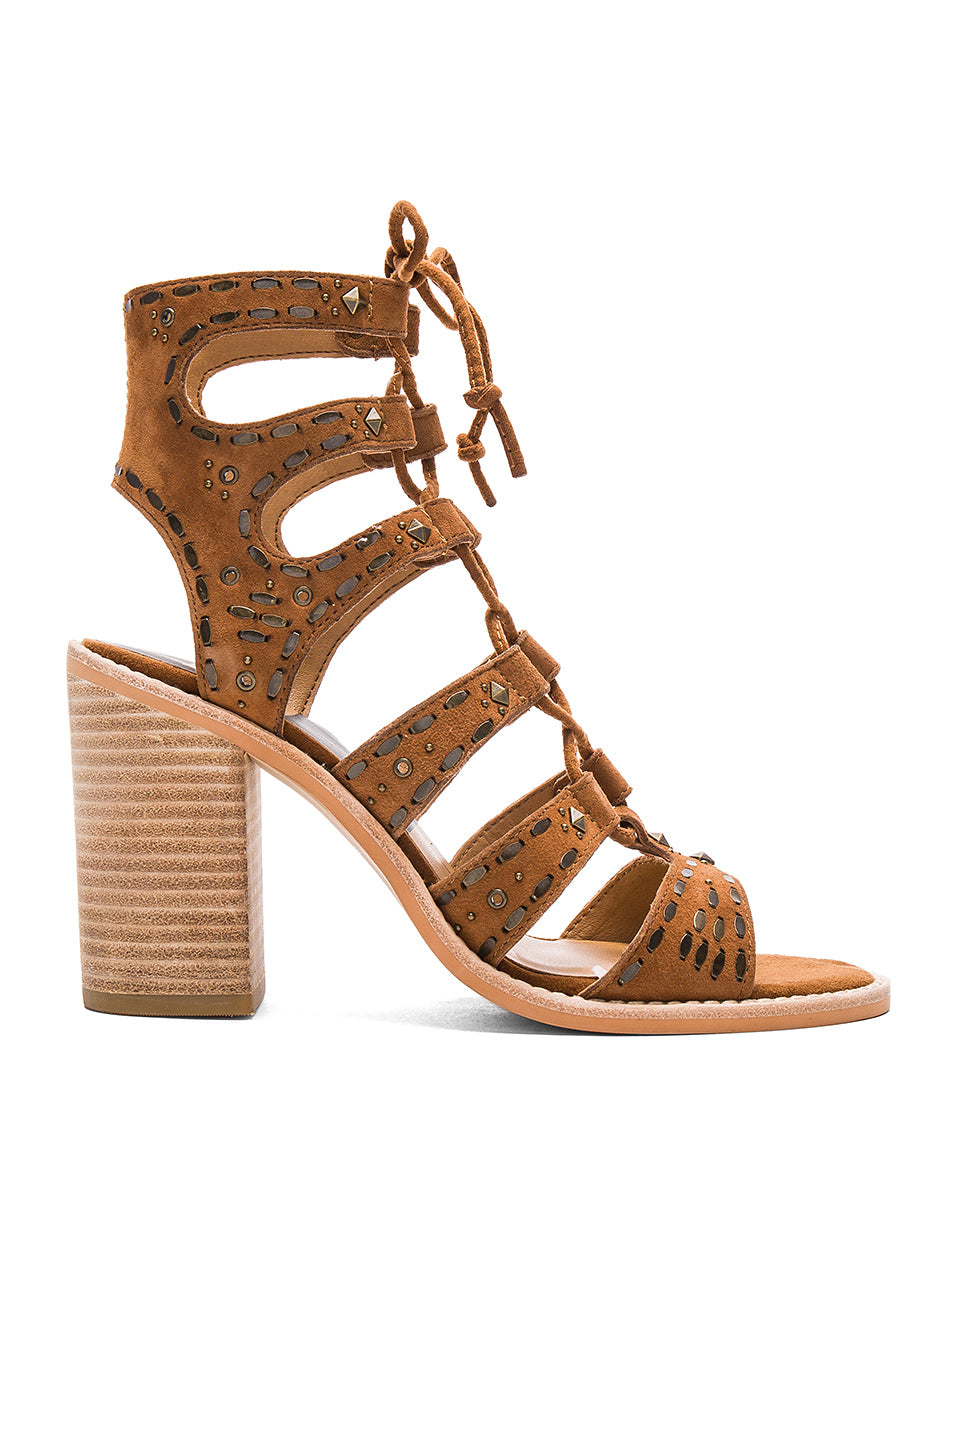 Lyndie Lace Up Heels